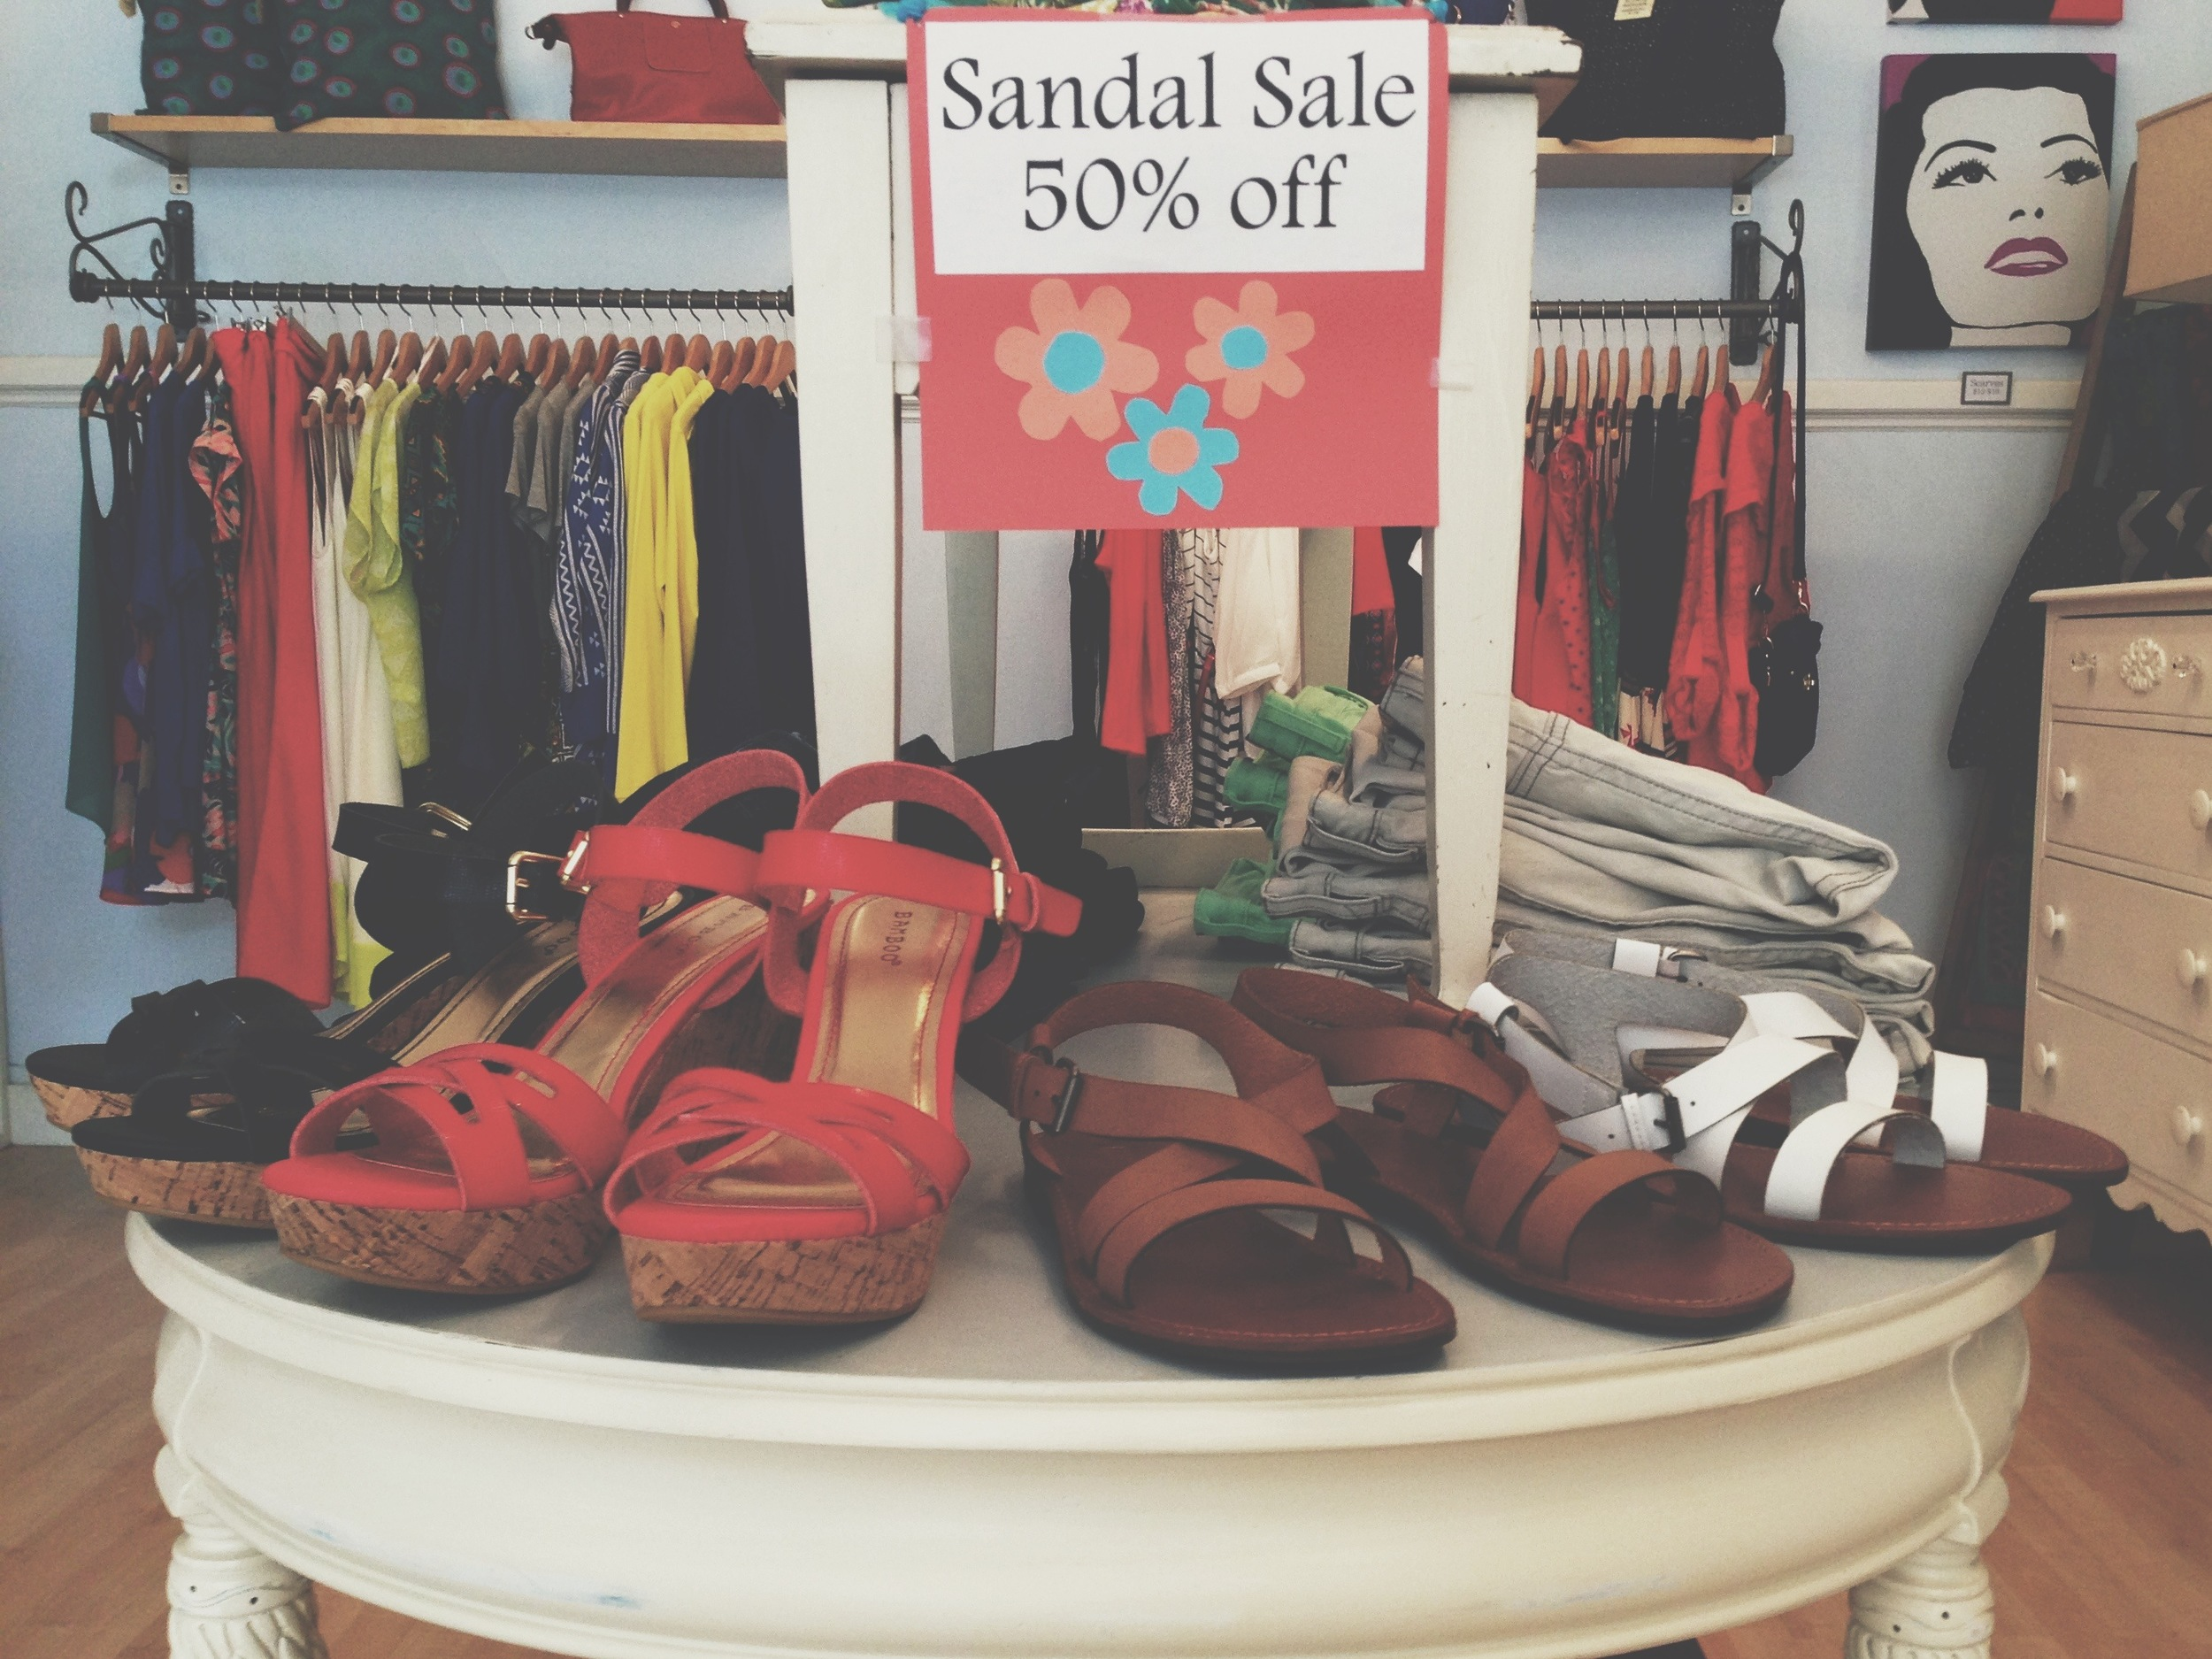 We can't forget our 50% off Sandal Sale!